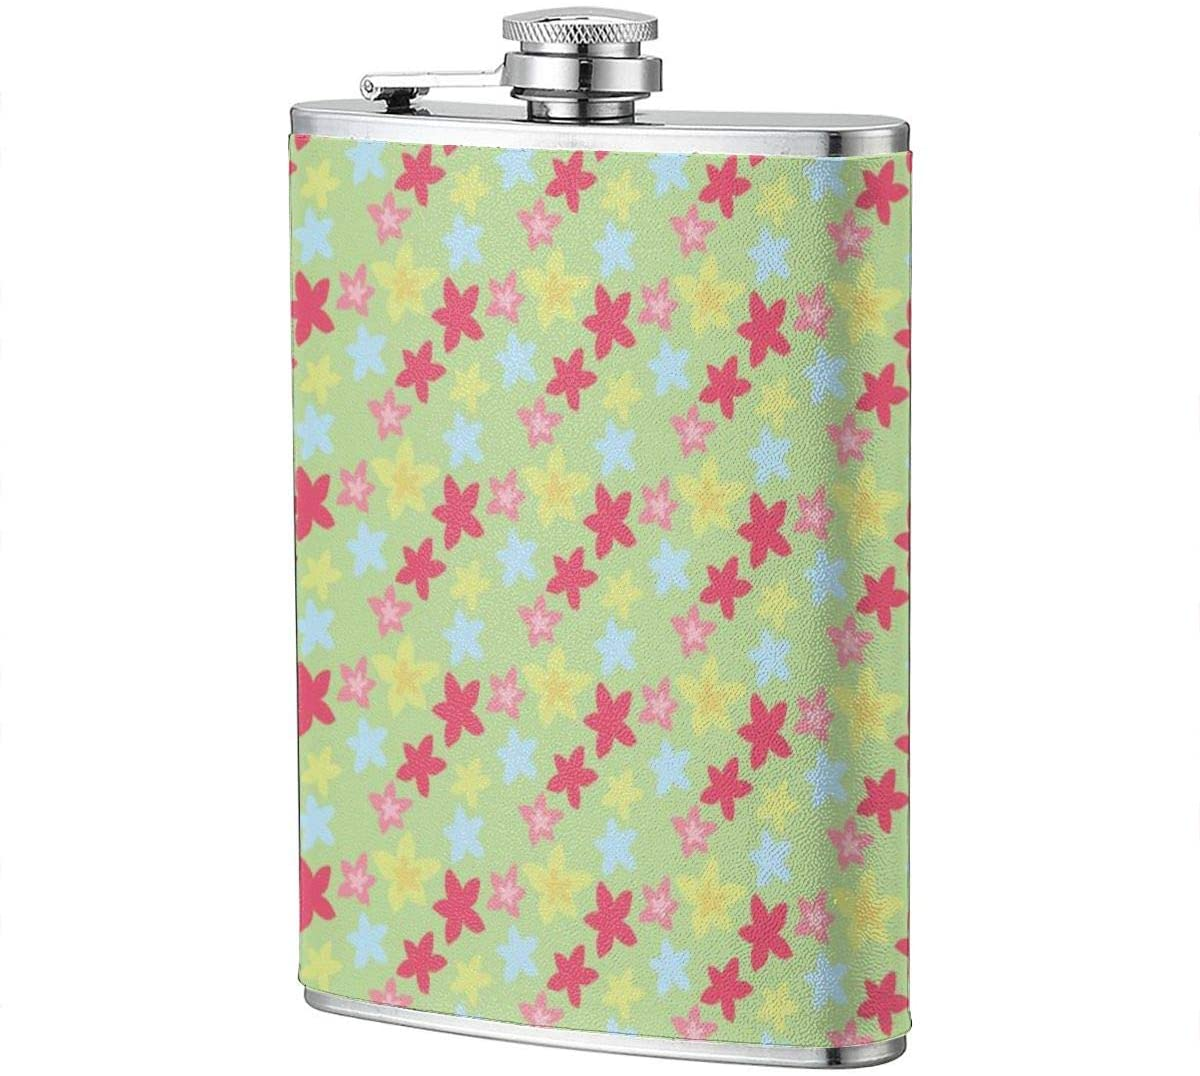 Pastel Colored Flower Portable 8 Oz Stainless Steel Leak-Proof Hip Flask For Whiskey With Leather Wrap Travel Camping Wine Pot Flagon For Men Women